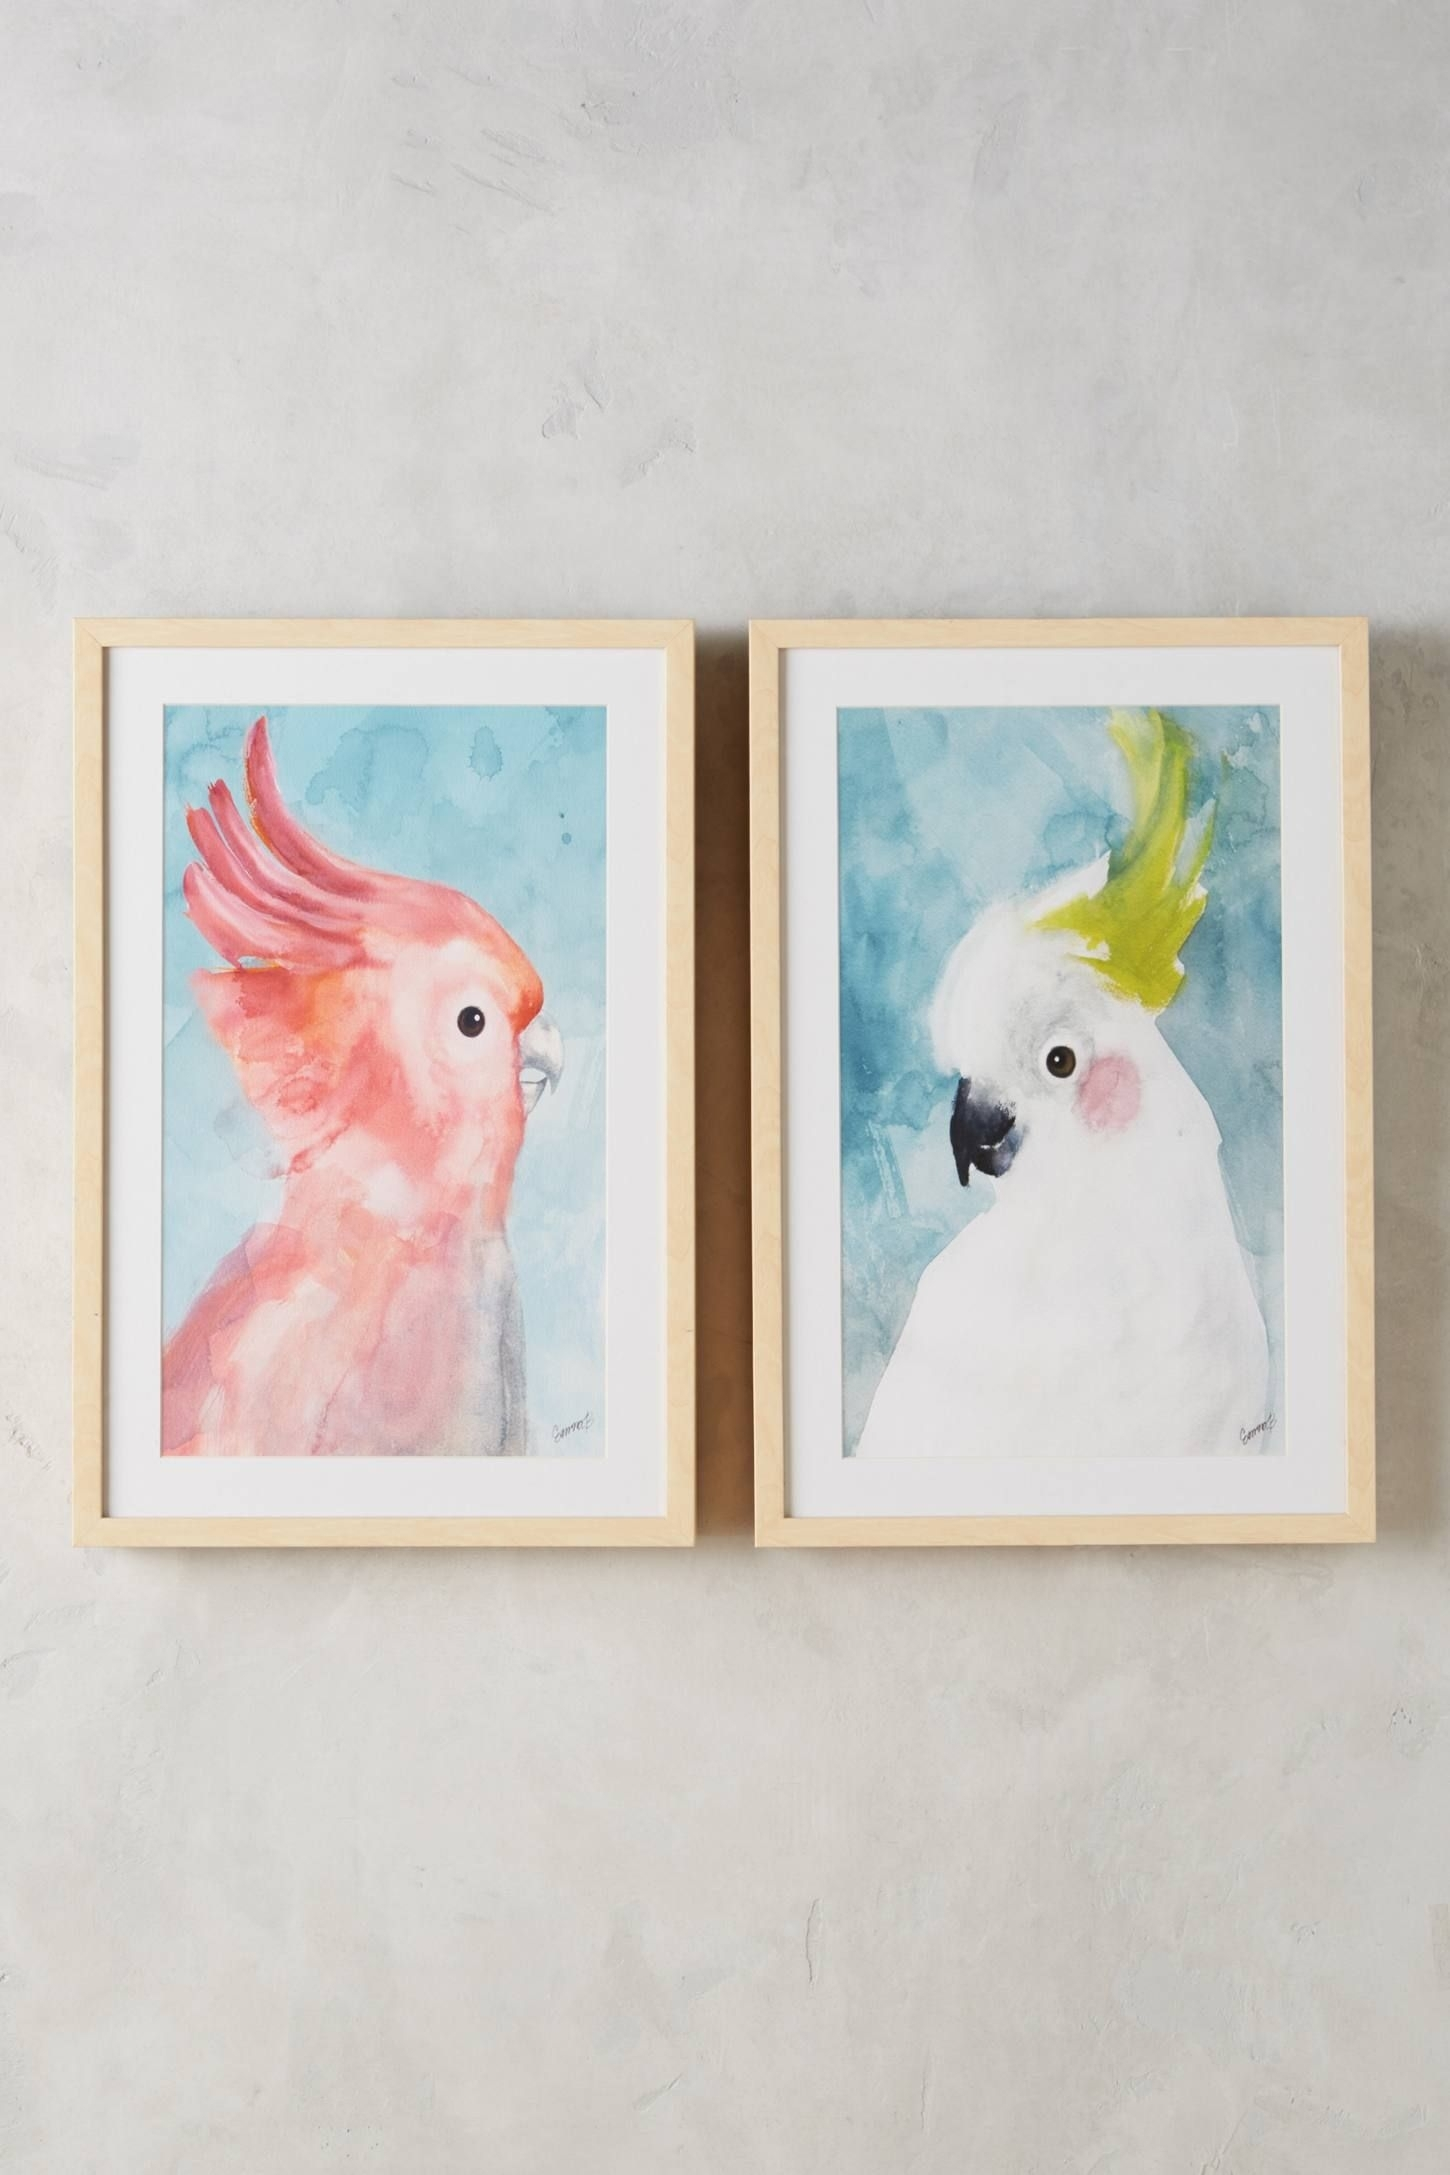 Shop The Fanciful Wall Art And More Anthropologie At Anthropologie Regarding Recent Anthropologie Wall Art (View 13 of 20)